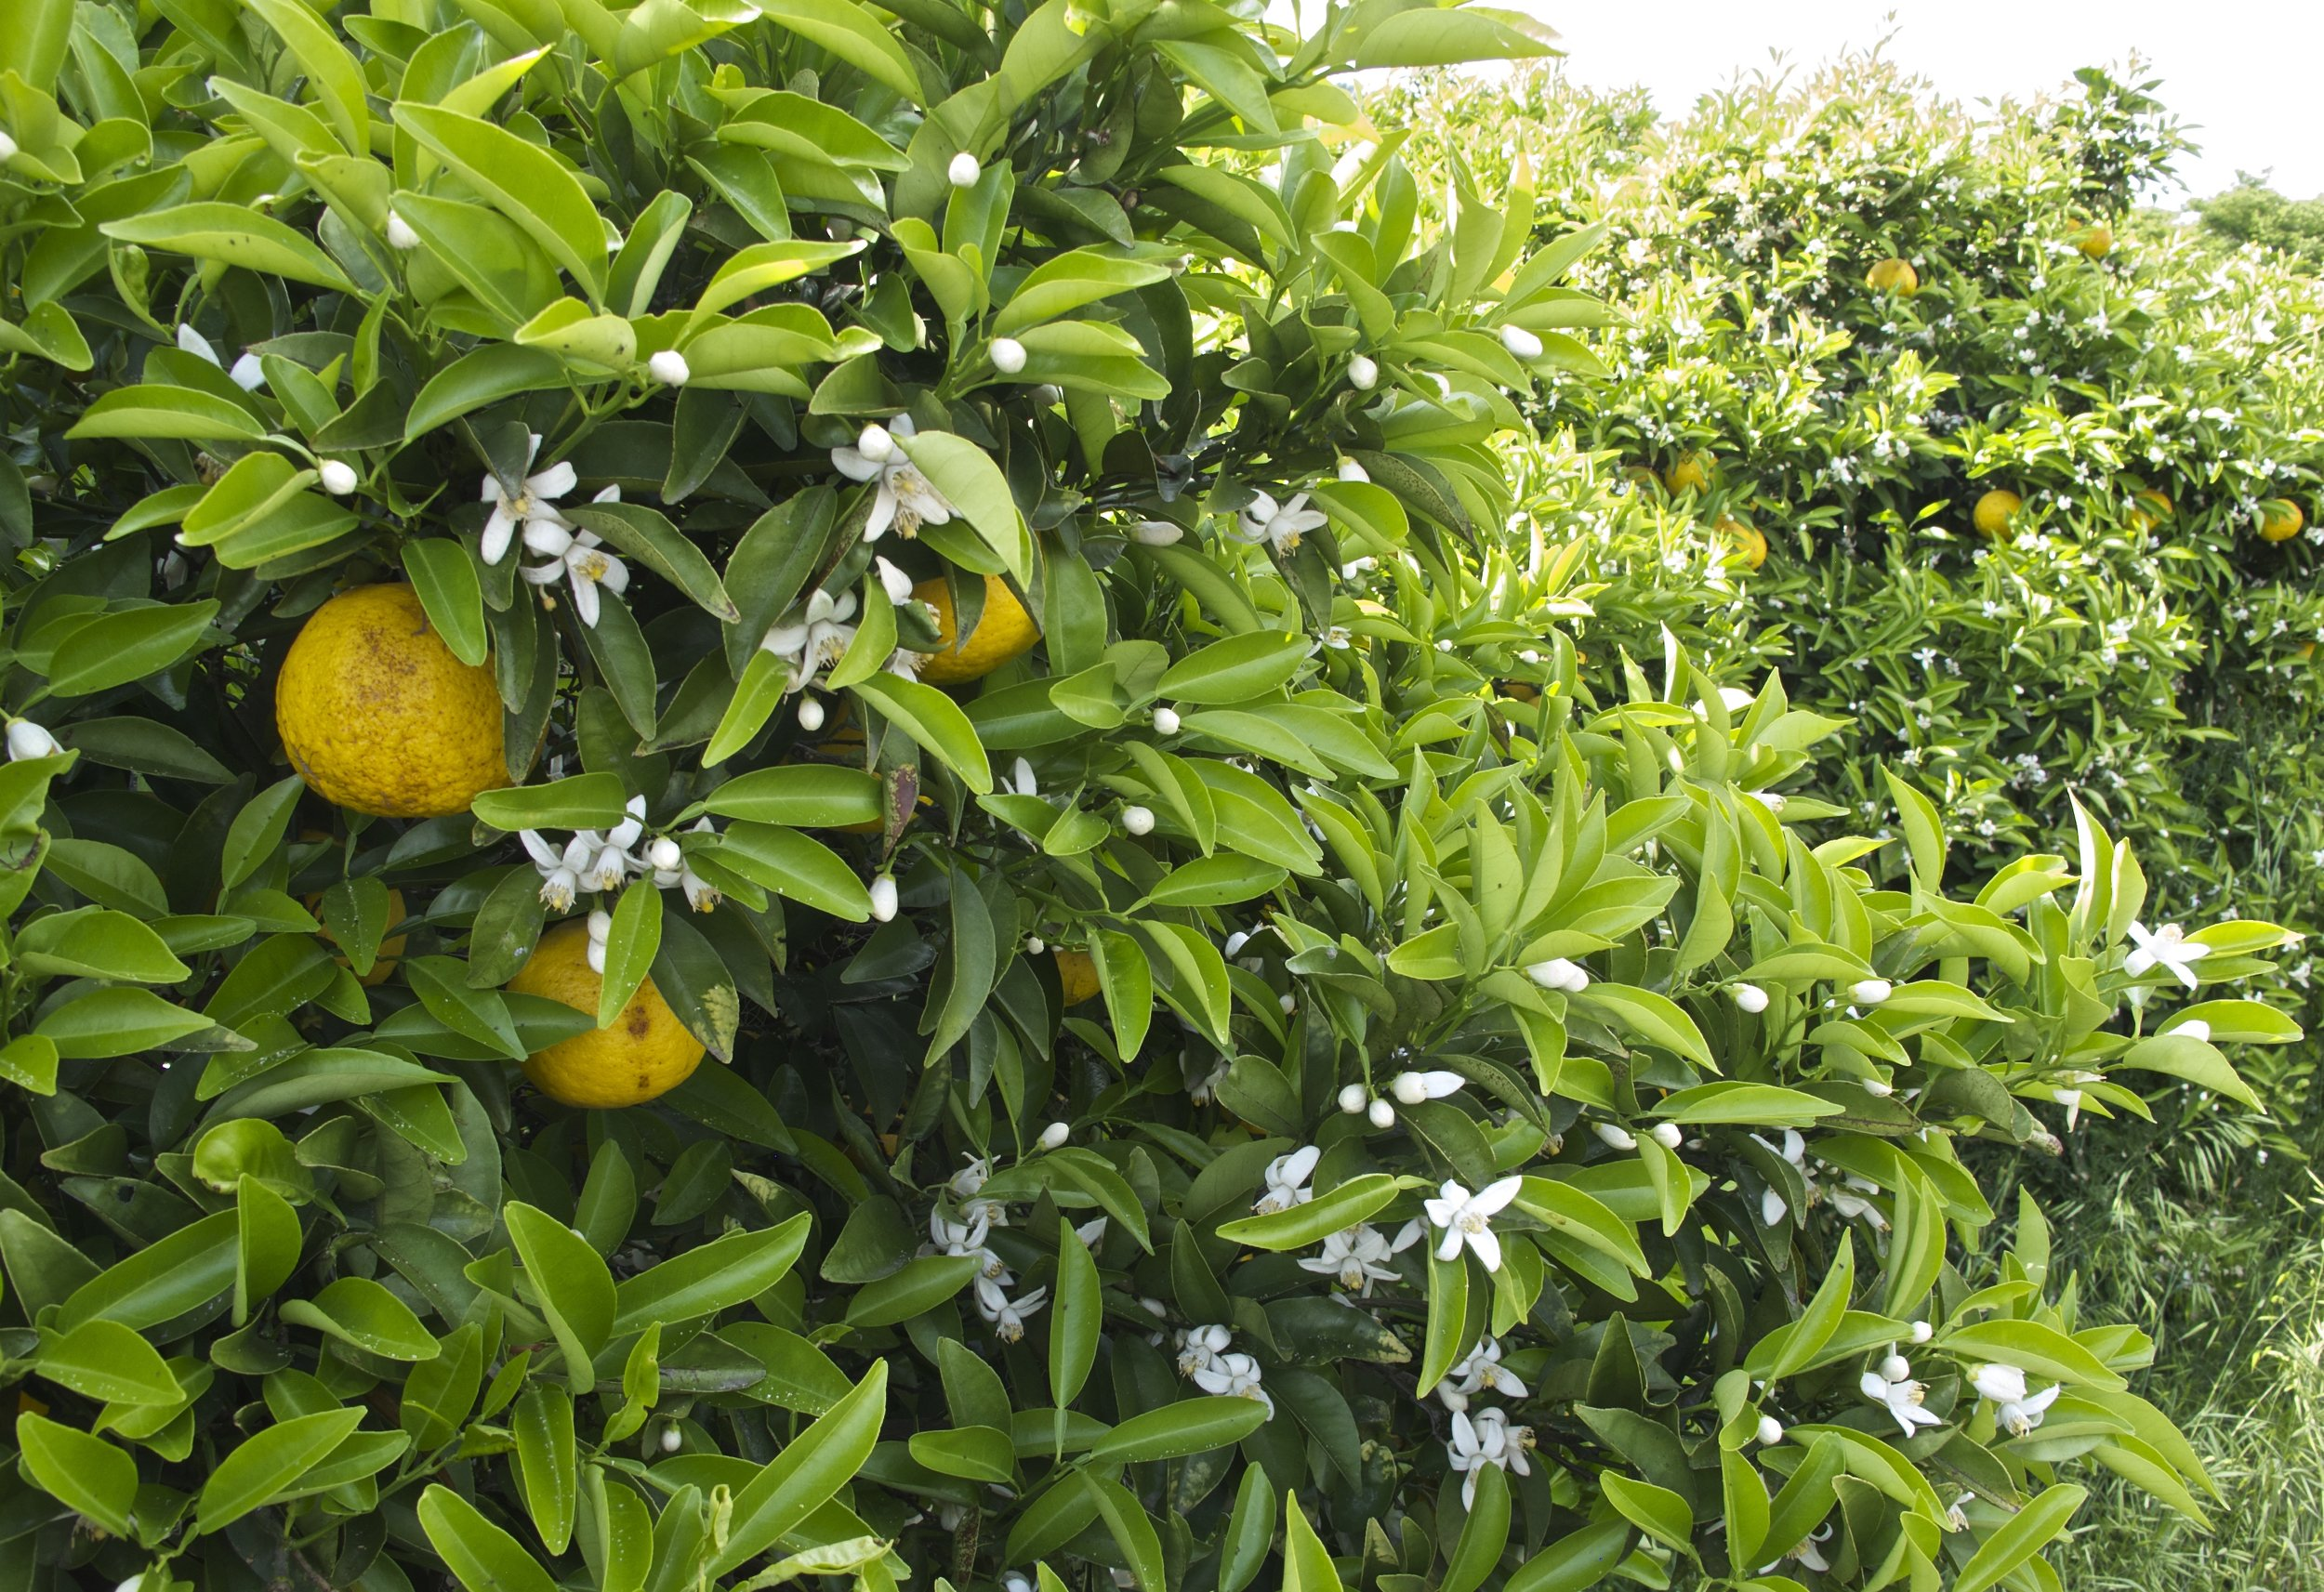 Amanatsu , a summer  mikan , ripening alongside their blossoms on Omishima Island in the Seto Inland Sea in June.